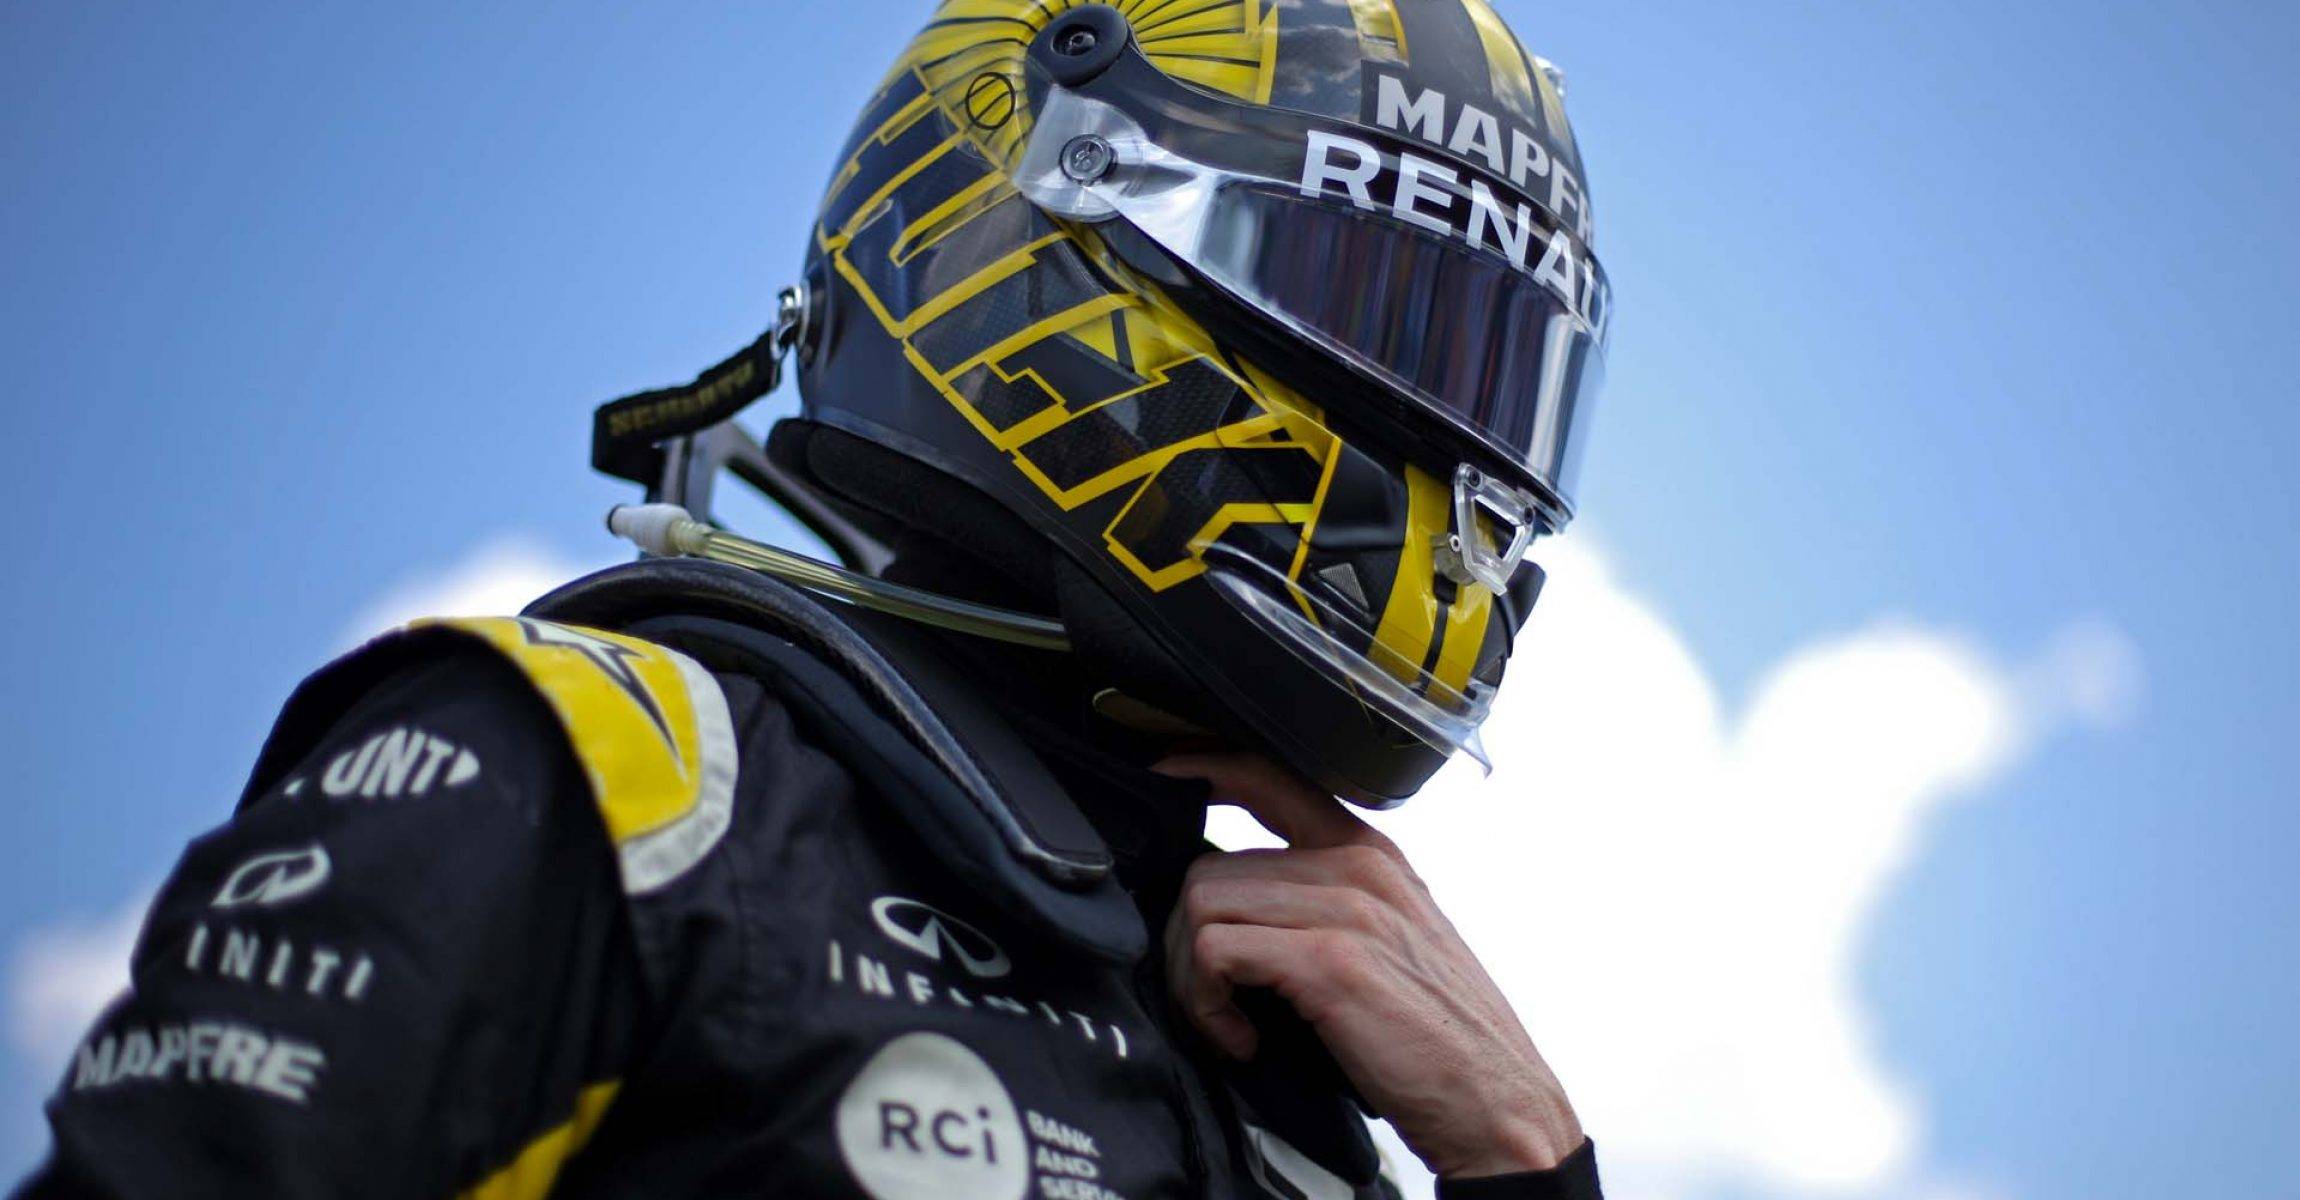 Nico Hulkenberg (GER) Renault F1 Team on the grid. Hungarian Grand Prix, Sunday 4th August 2019. Budapest, Hungary. Hülkenberg